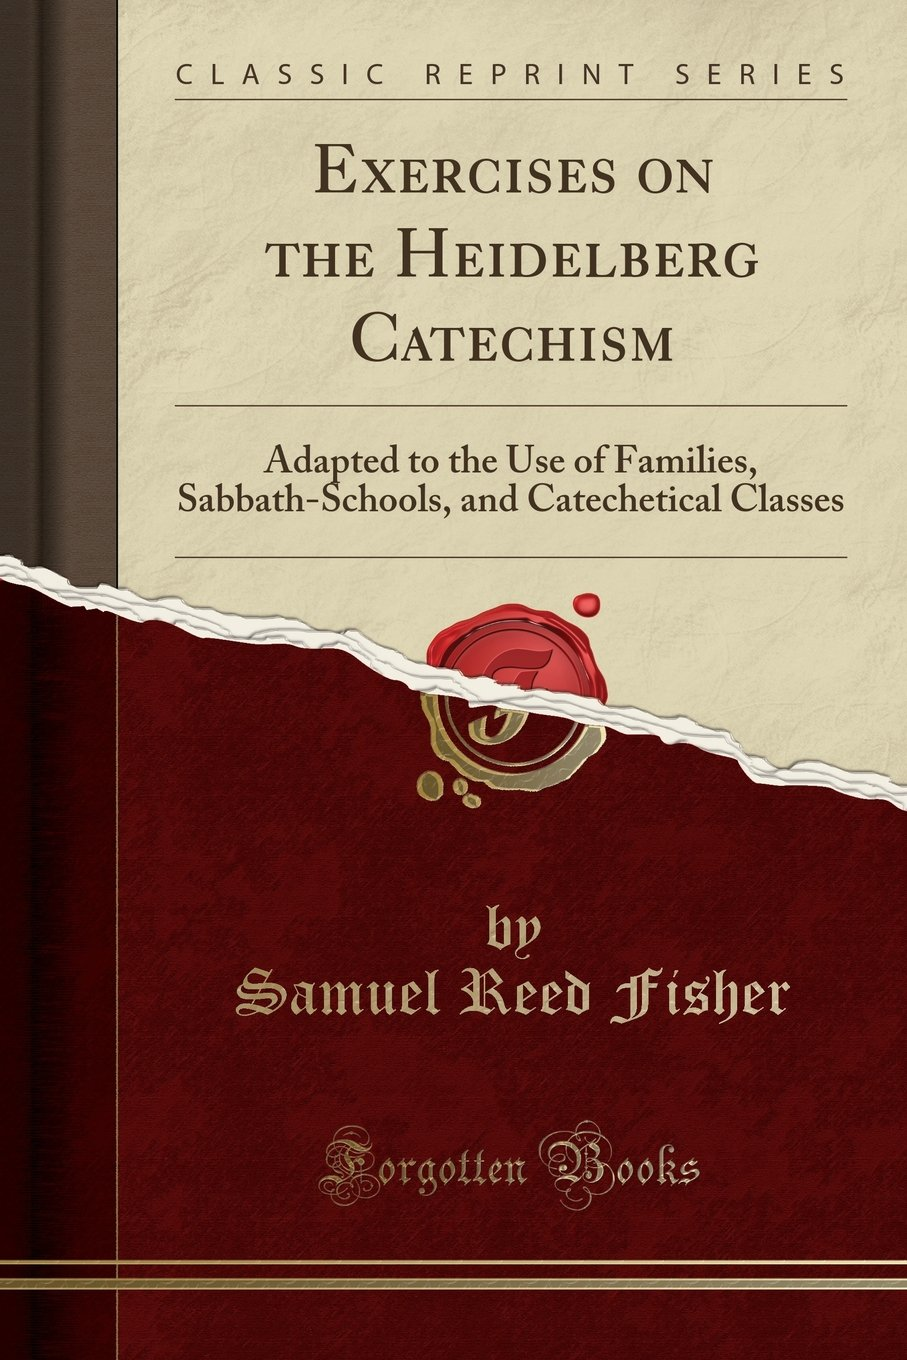 Read Online Exercises on the Heidelberg Catechism: Adapted to the Use of Families, Sabbath-Schools, and Catechetical Classes (Classic Reprint) ebook